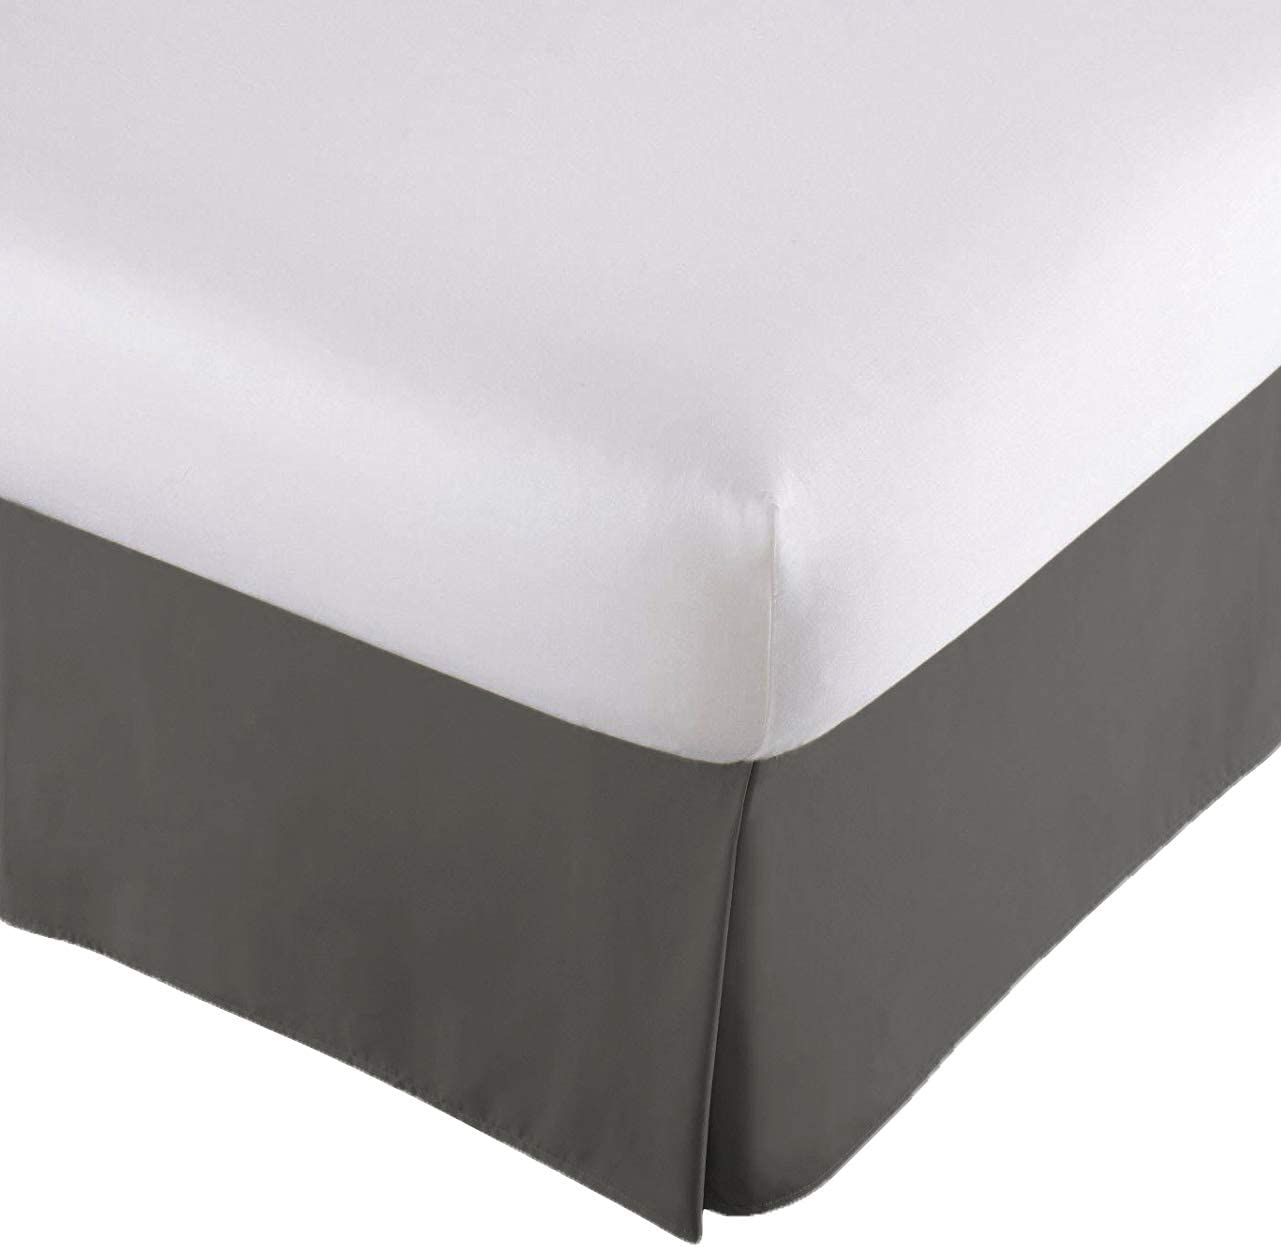 Lux Decor Collection Queen Size Bed Skirt - Durable Long Staple Micro Fiber - 14 Inch Drop, Easy On/Easy Off - Comfortable & Abrasion Resistant - Quadruple Pleated (Queen,Grey)